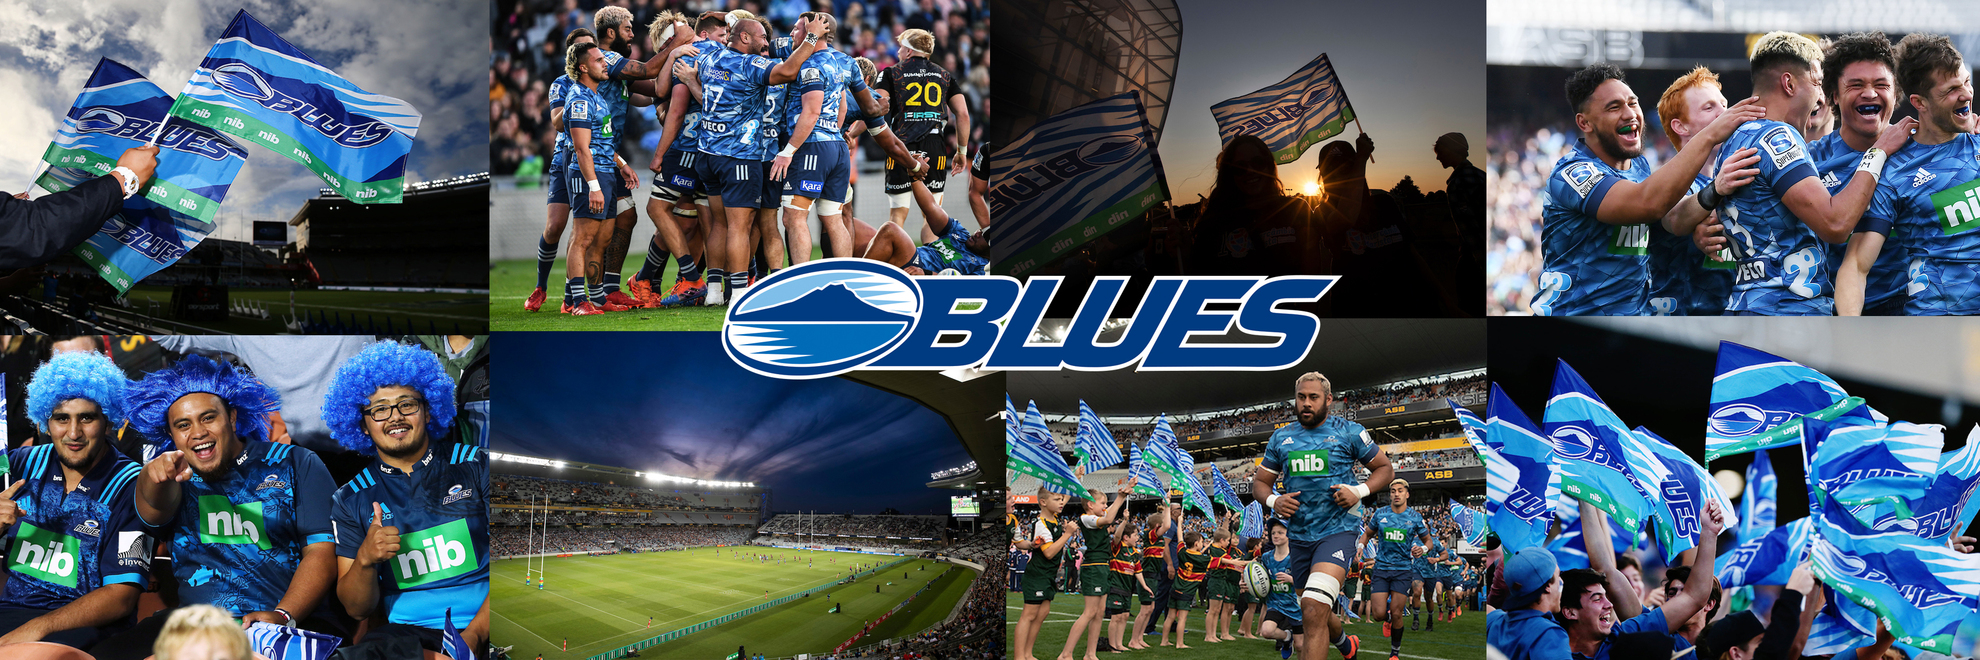 Blues 2021 Corporate Hospitality - Experience Group